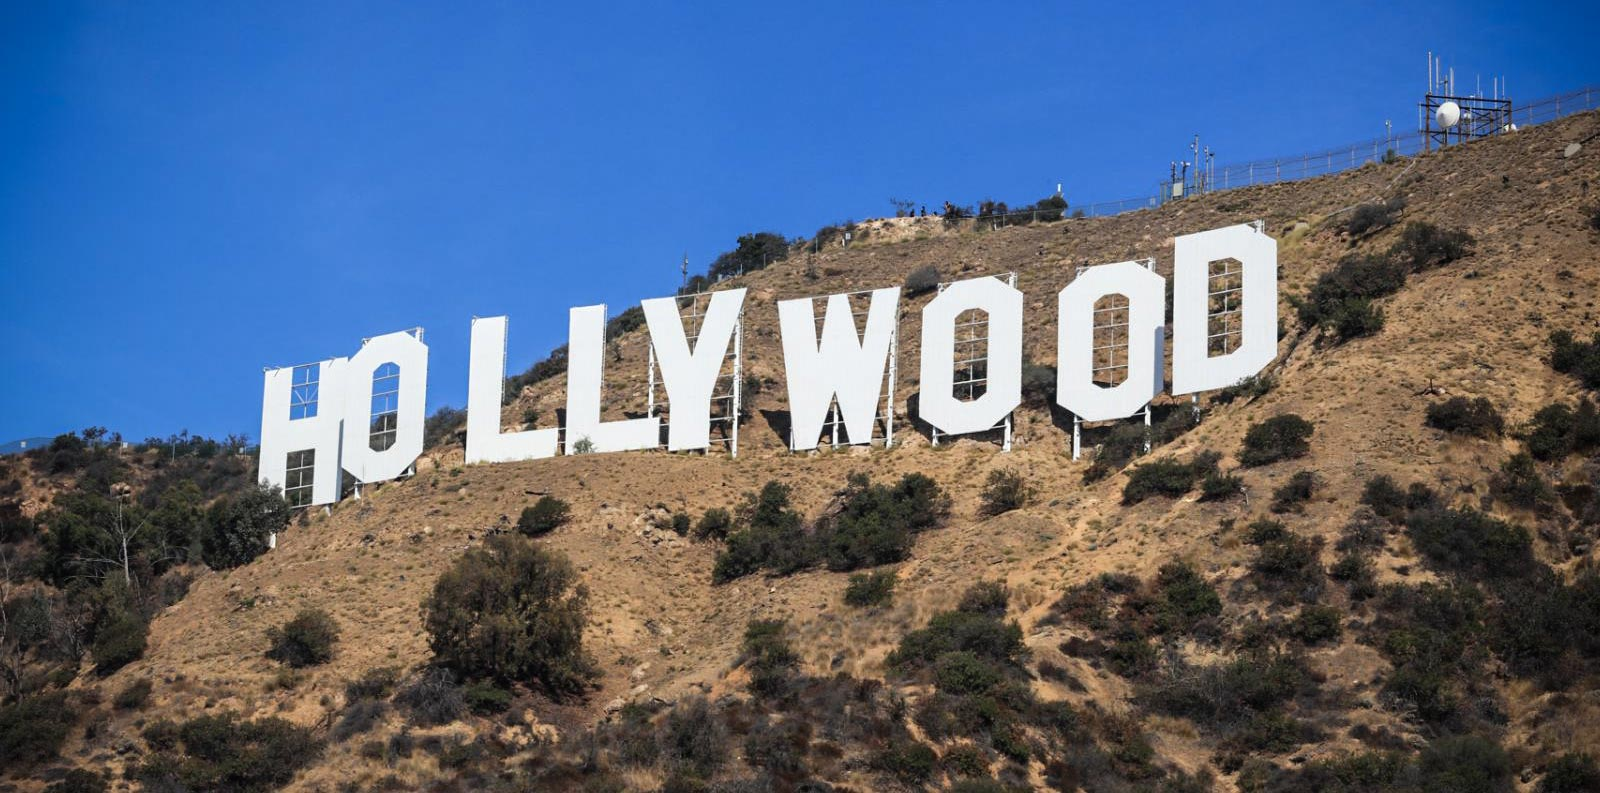 5 Strange Facts About the Hollywood Sign